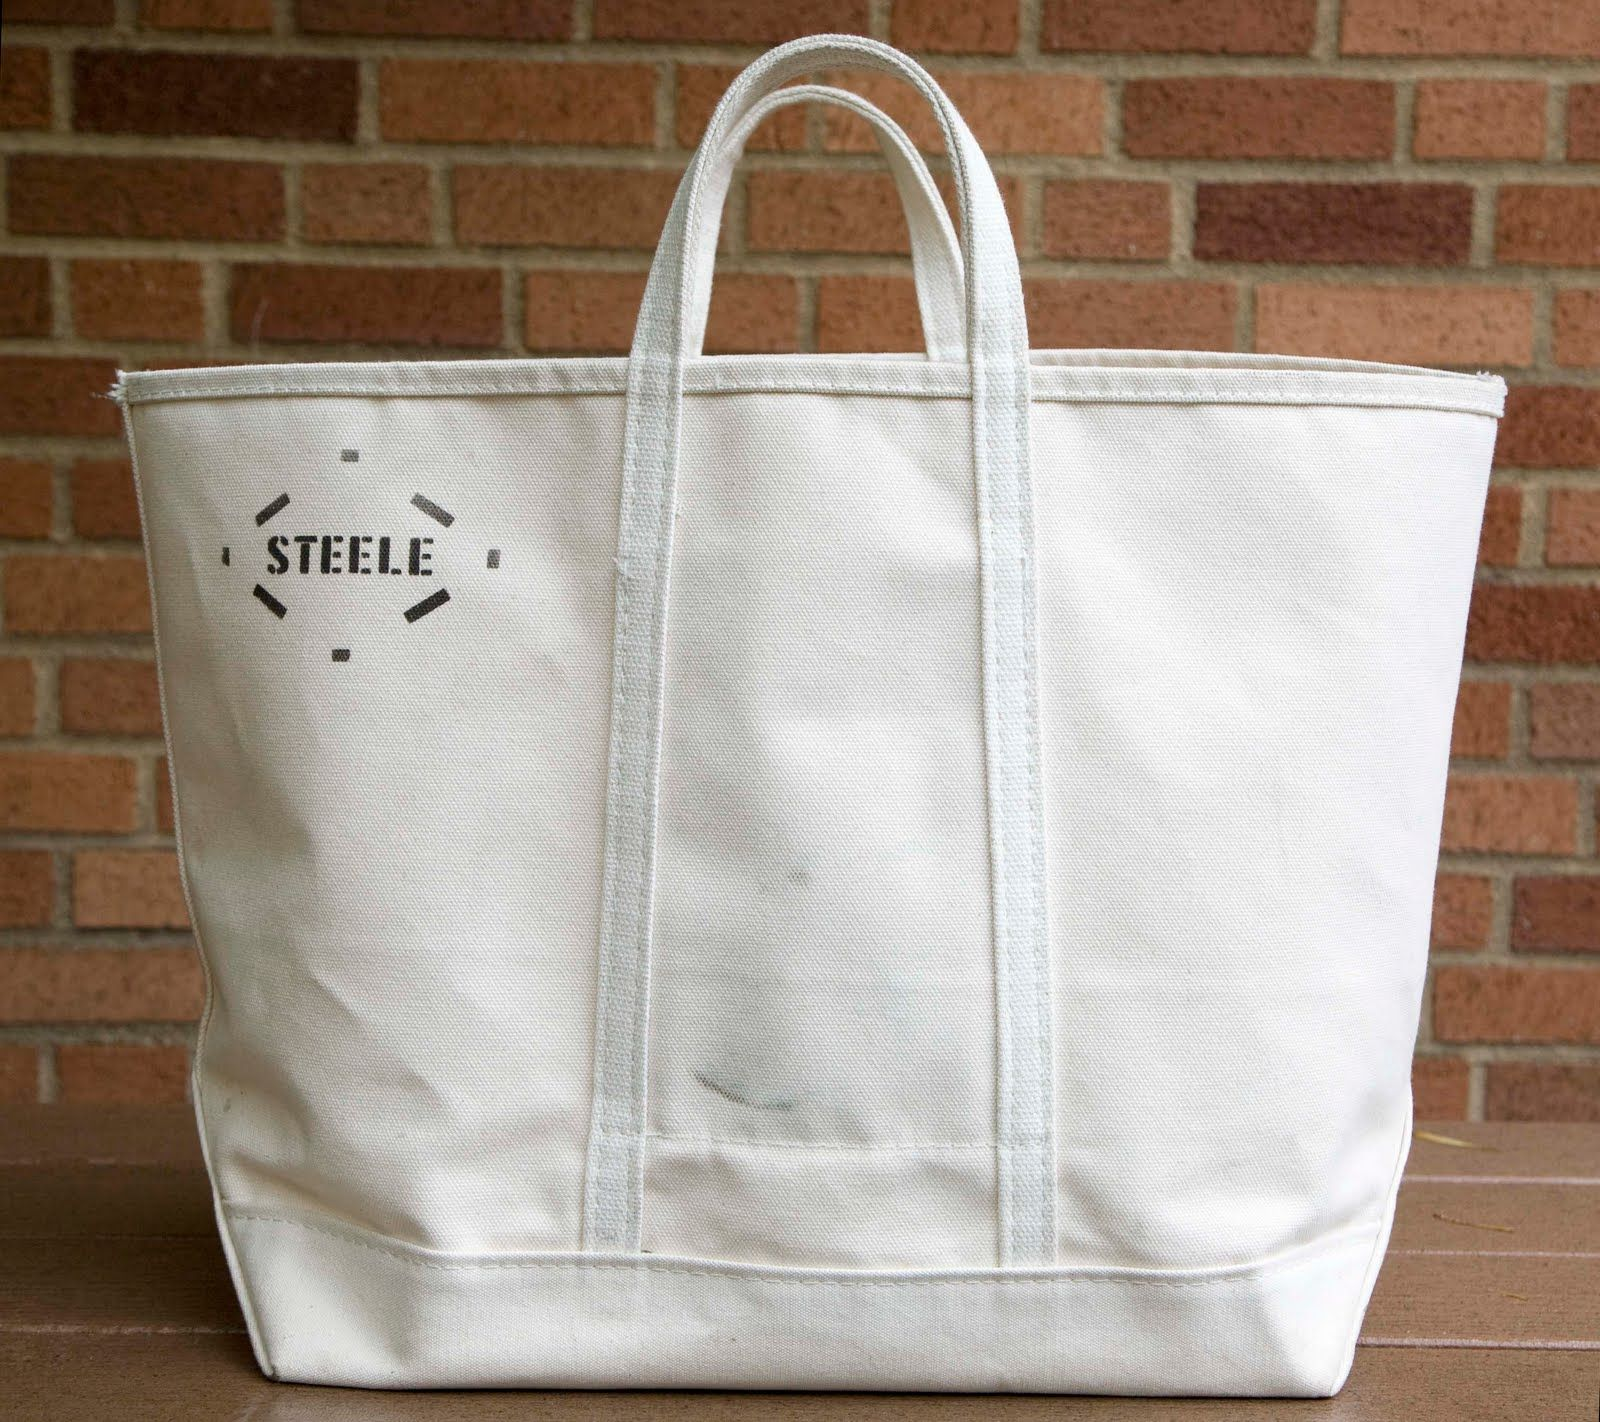 Archival Clothing  Archival Totes  Steele Canvas Basket Co.   Diner ... 10b415786a